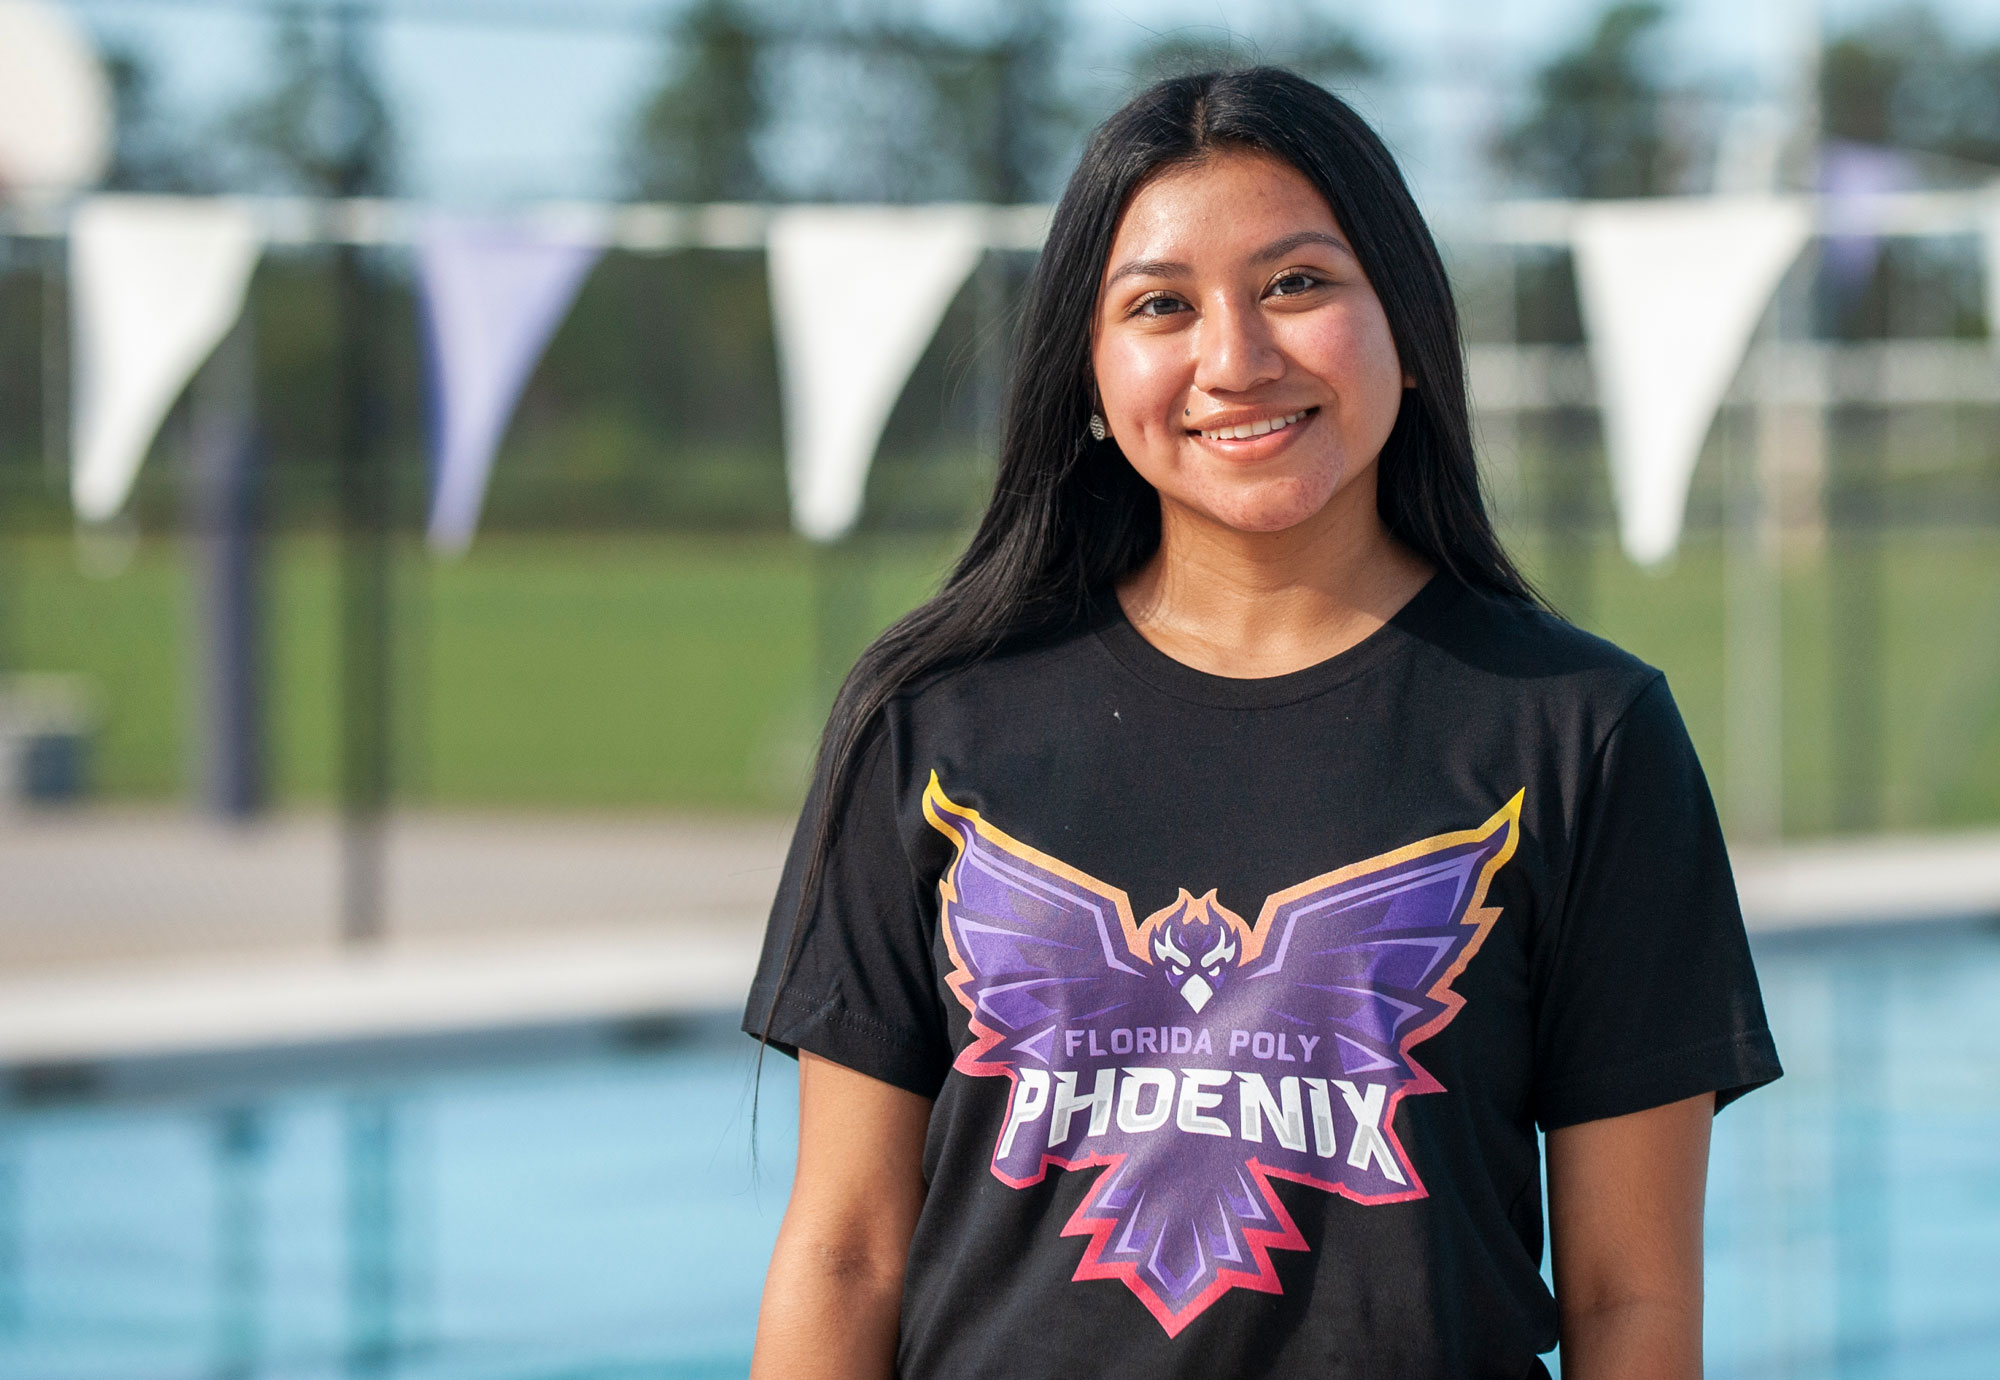 New Phoenix rises into existence at Florida Poly